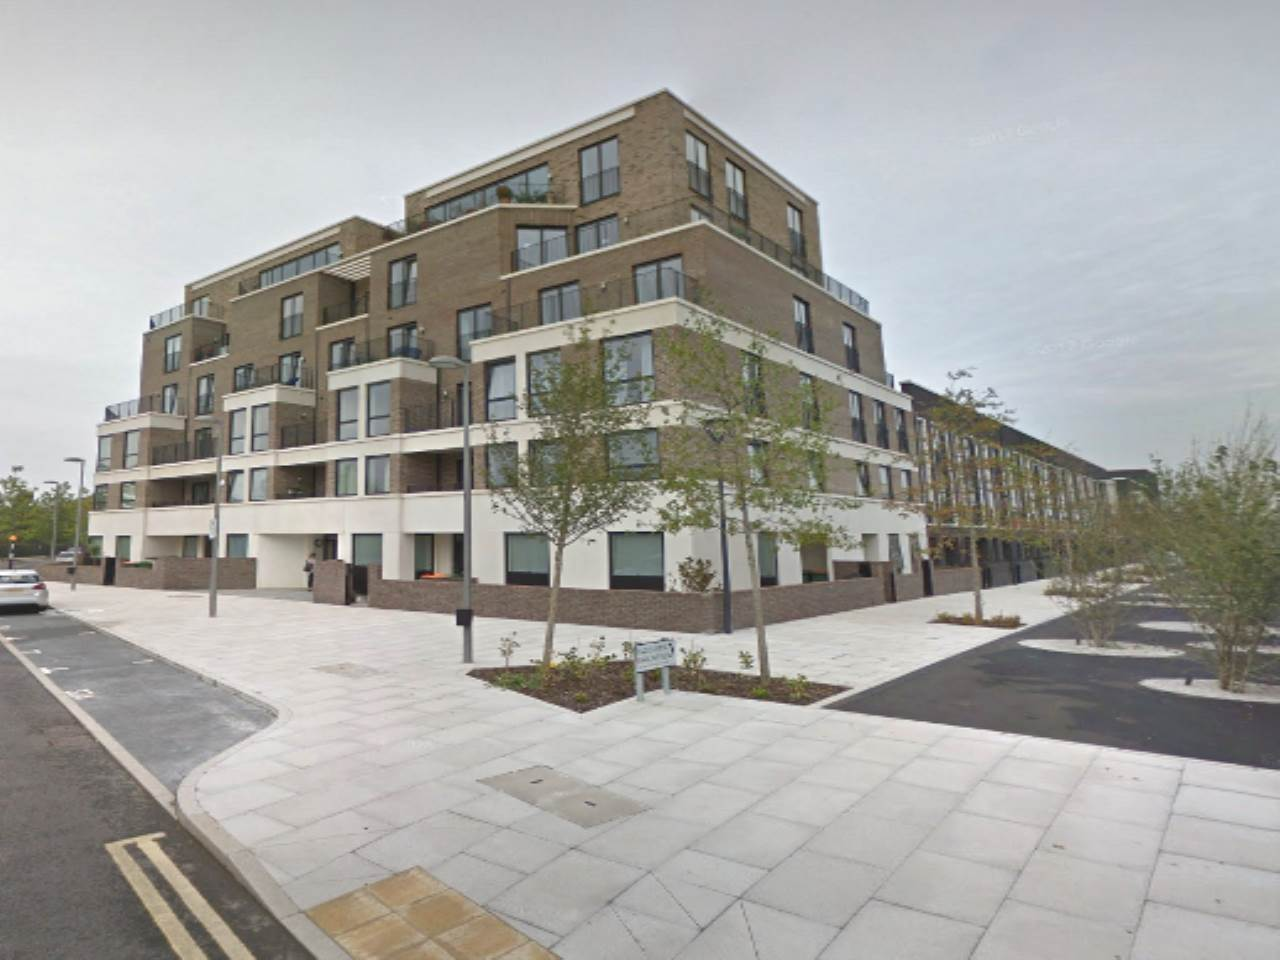 3 bed flat to rent in Stratford, E20